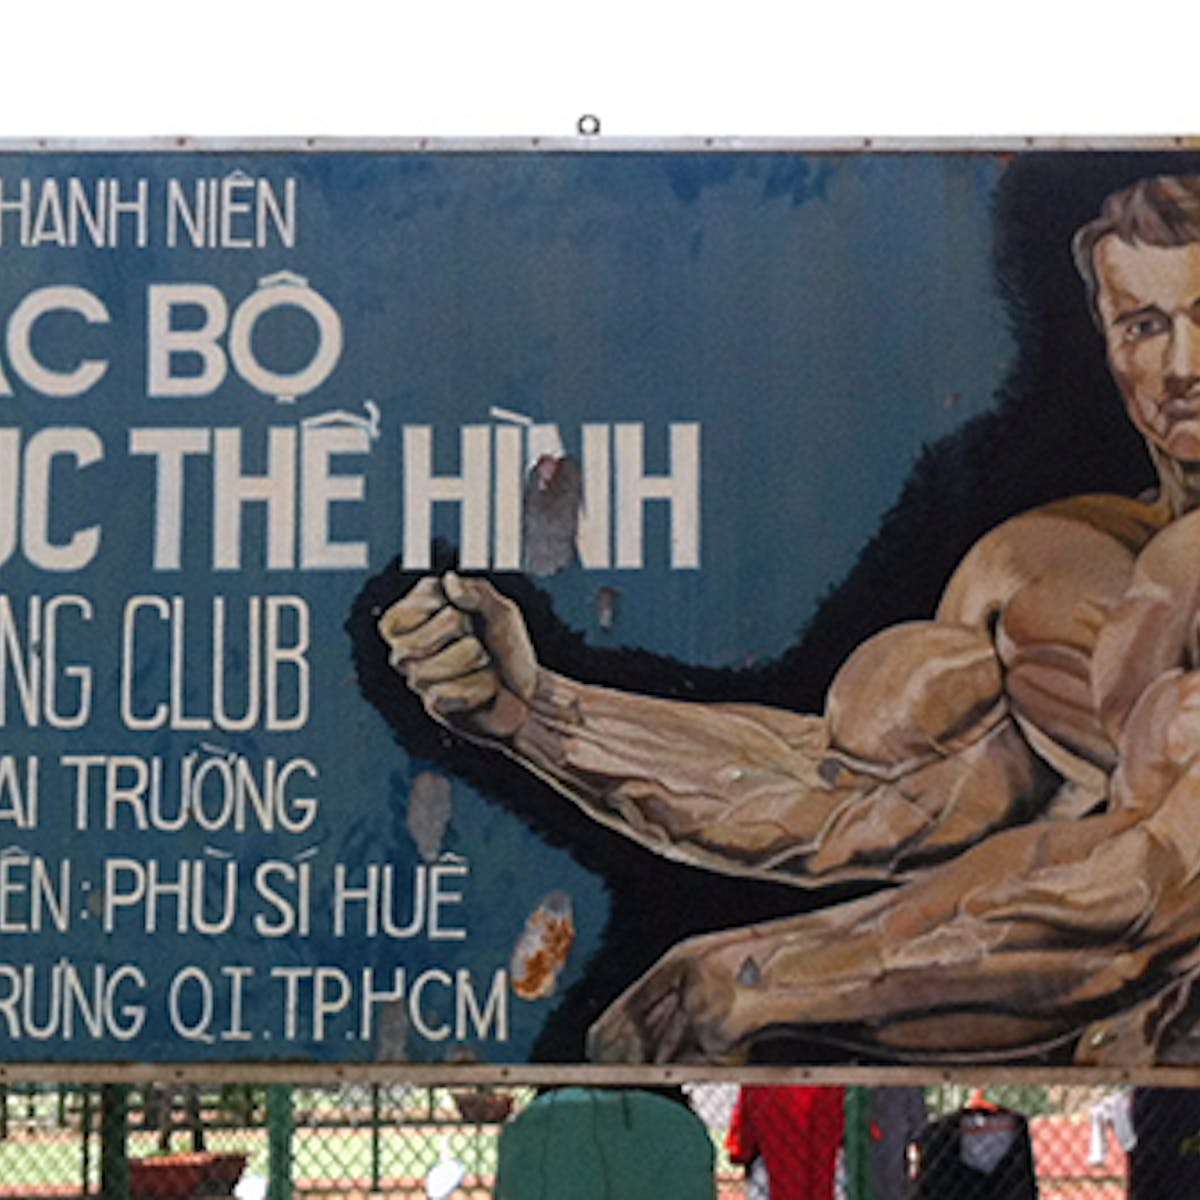 Vietnam's disappearing vintage signs are pop culture